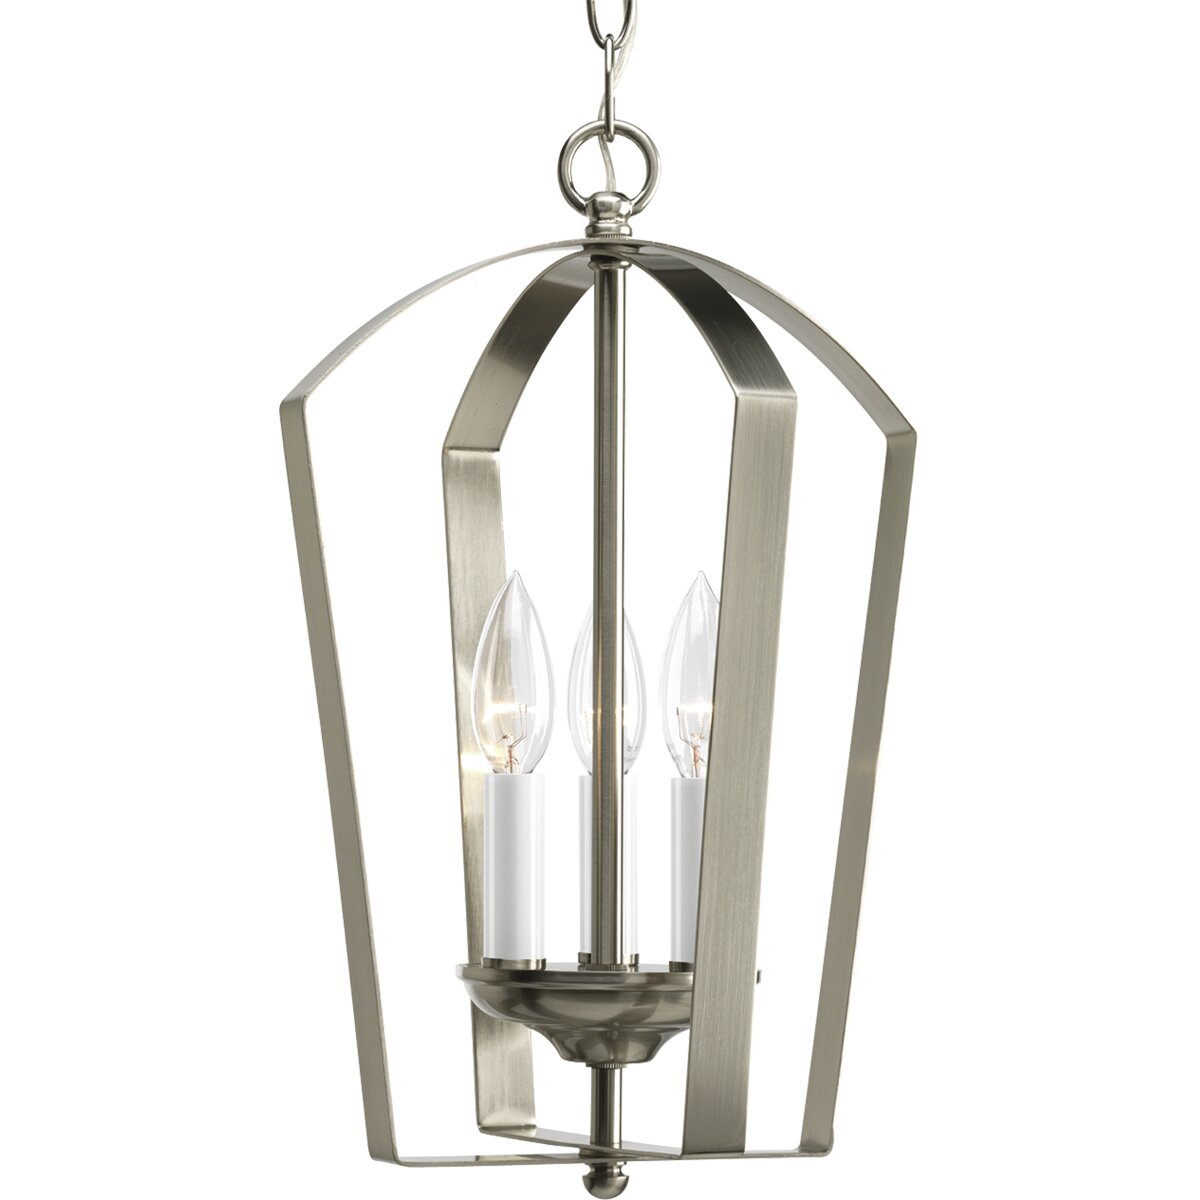 Foyer Pendant Lighting : Progress lighting gather light hall and foyer pendant